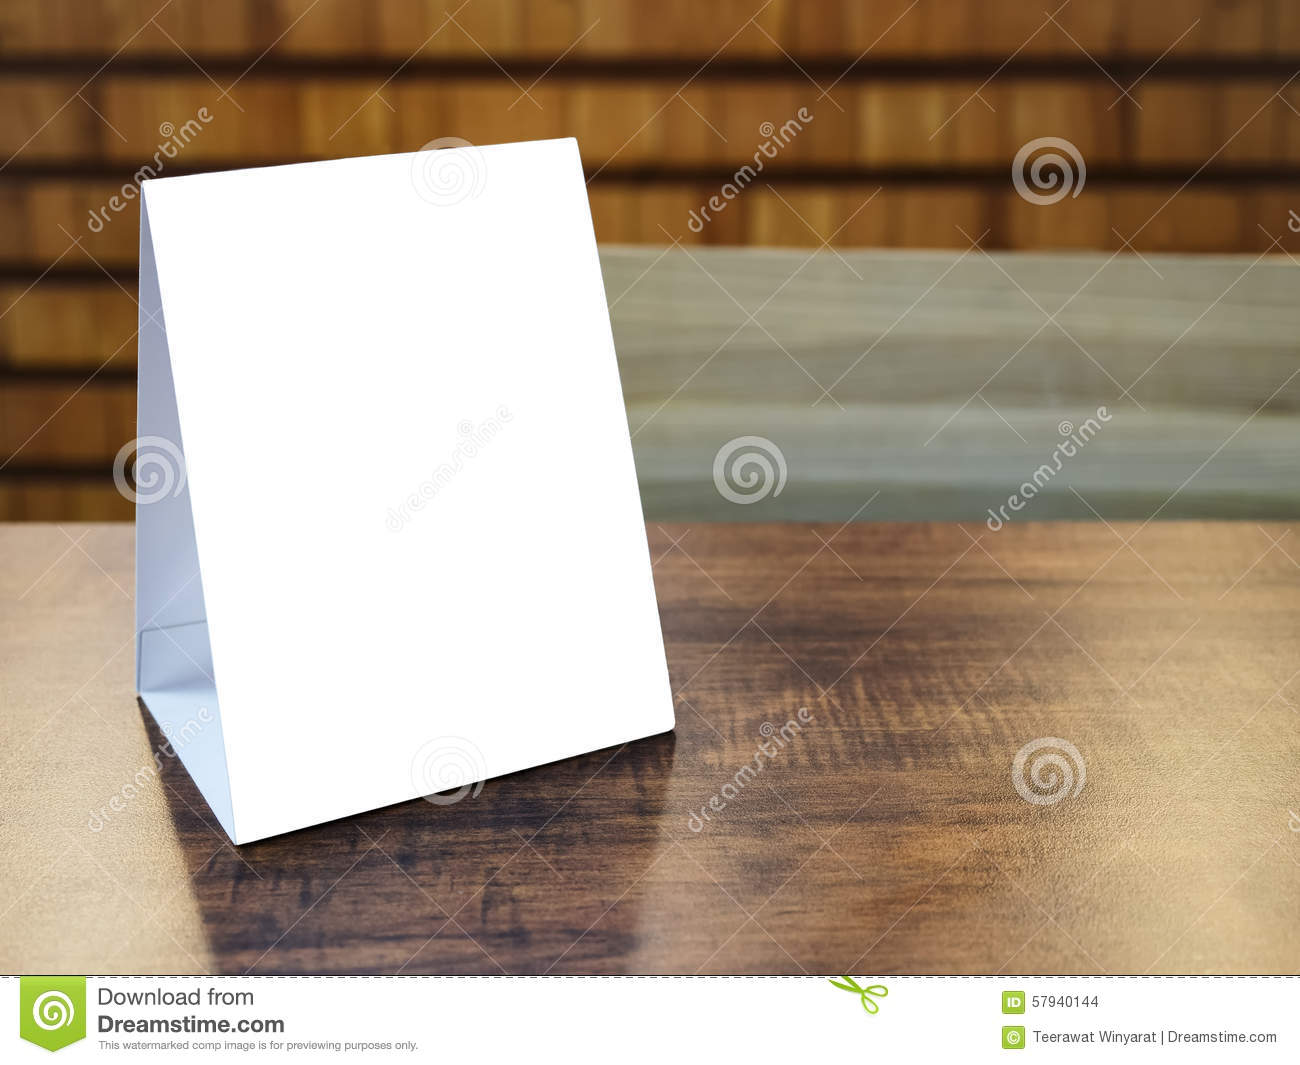 Mock Up Menu Frame Template On Table In Restaurant Cafe Stock Photo  Image of decor food 57940144